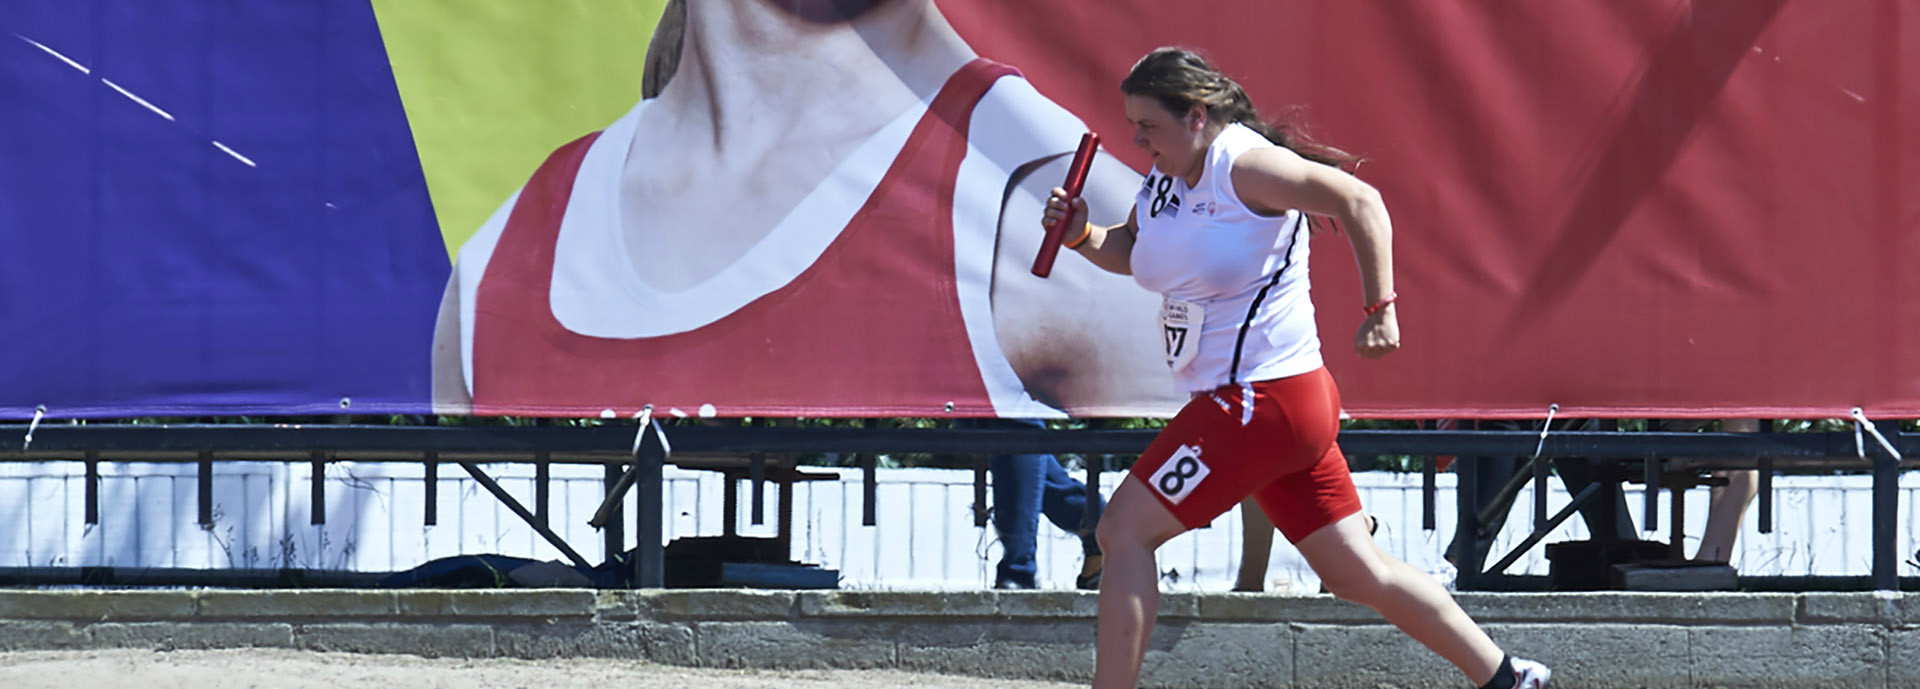 Special Olympics female athlete running with relay baton